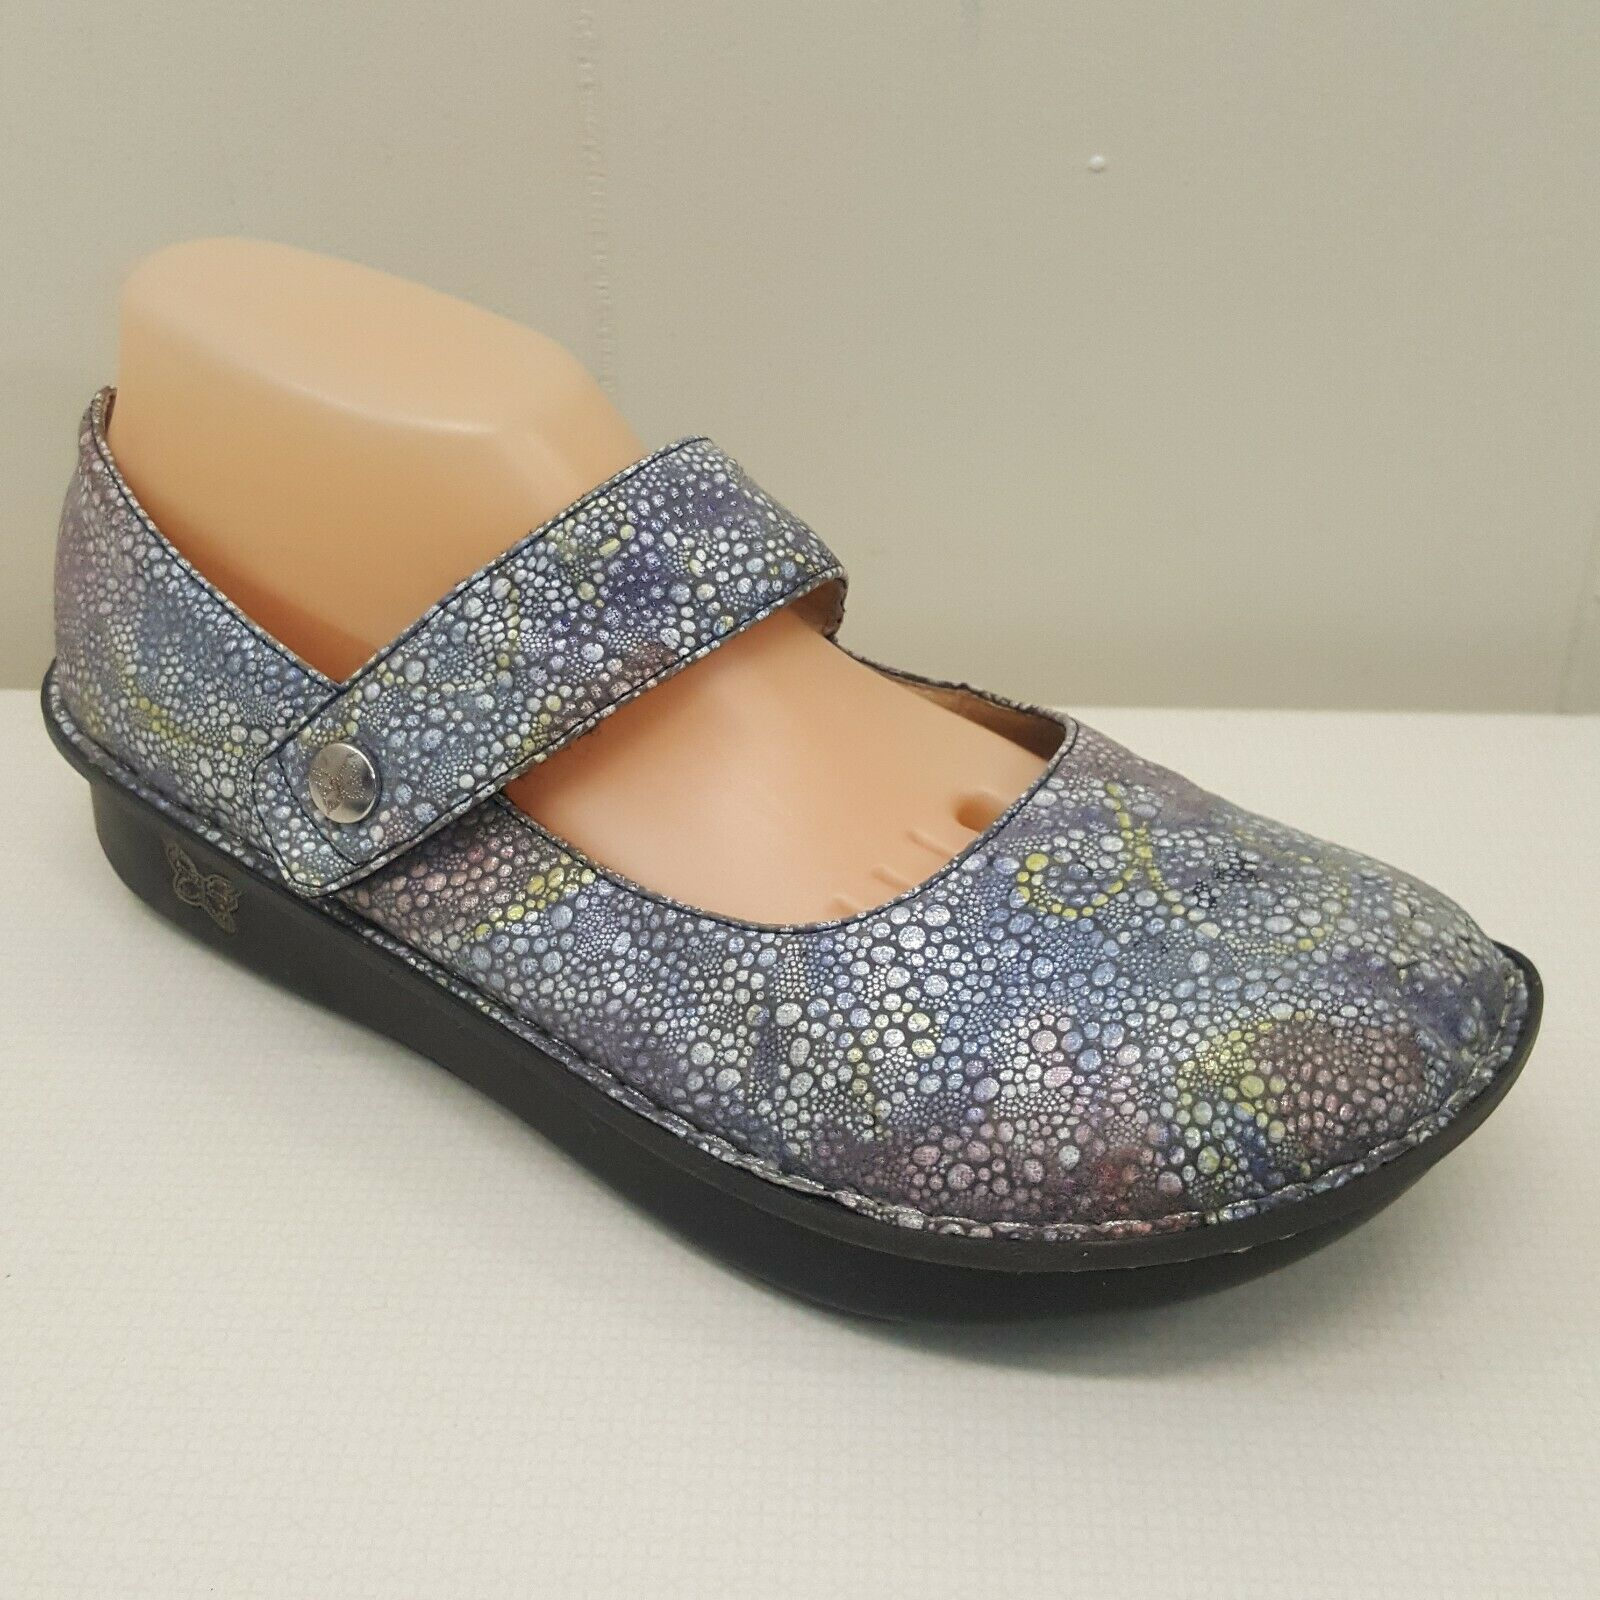 Alegria PAL 335 shoes 11 Mary Janes 41 bluee Bubbles Iridescent Metallic Leather